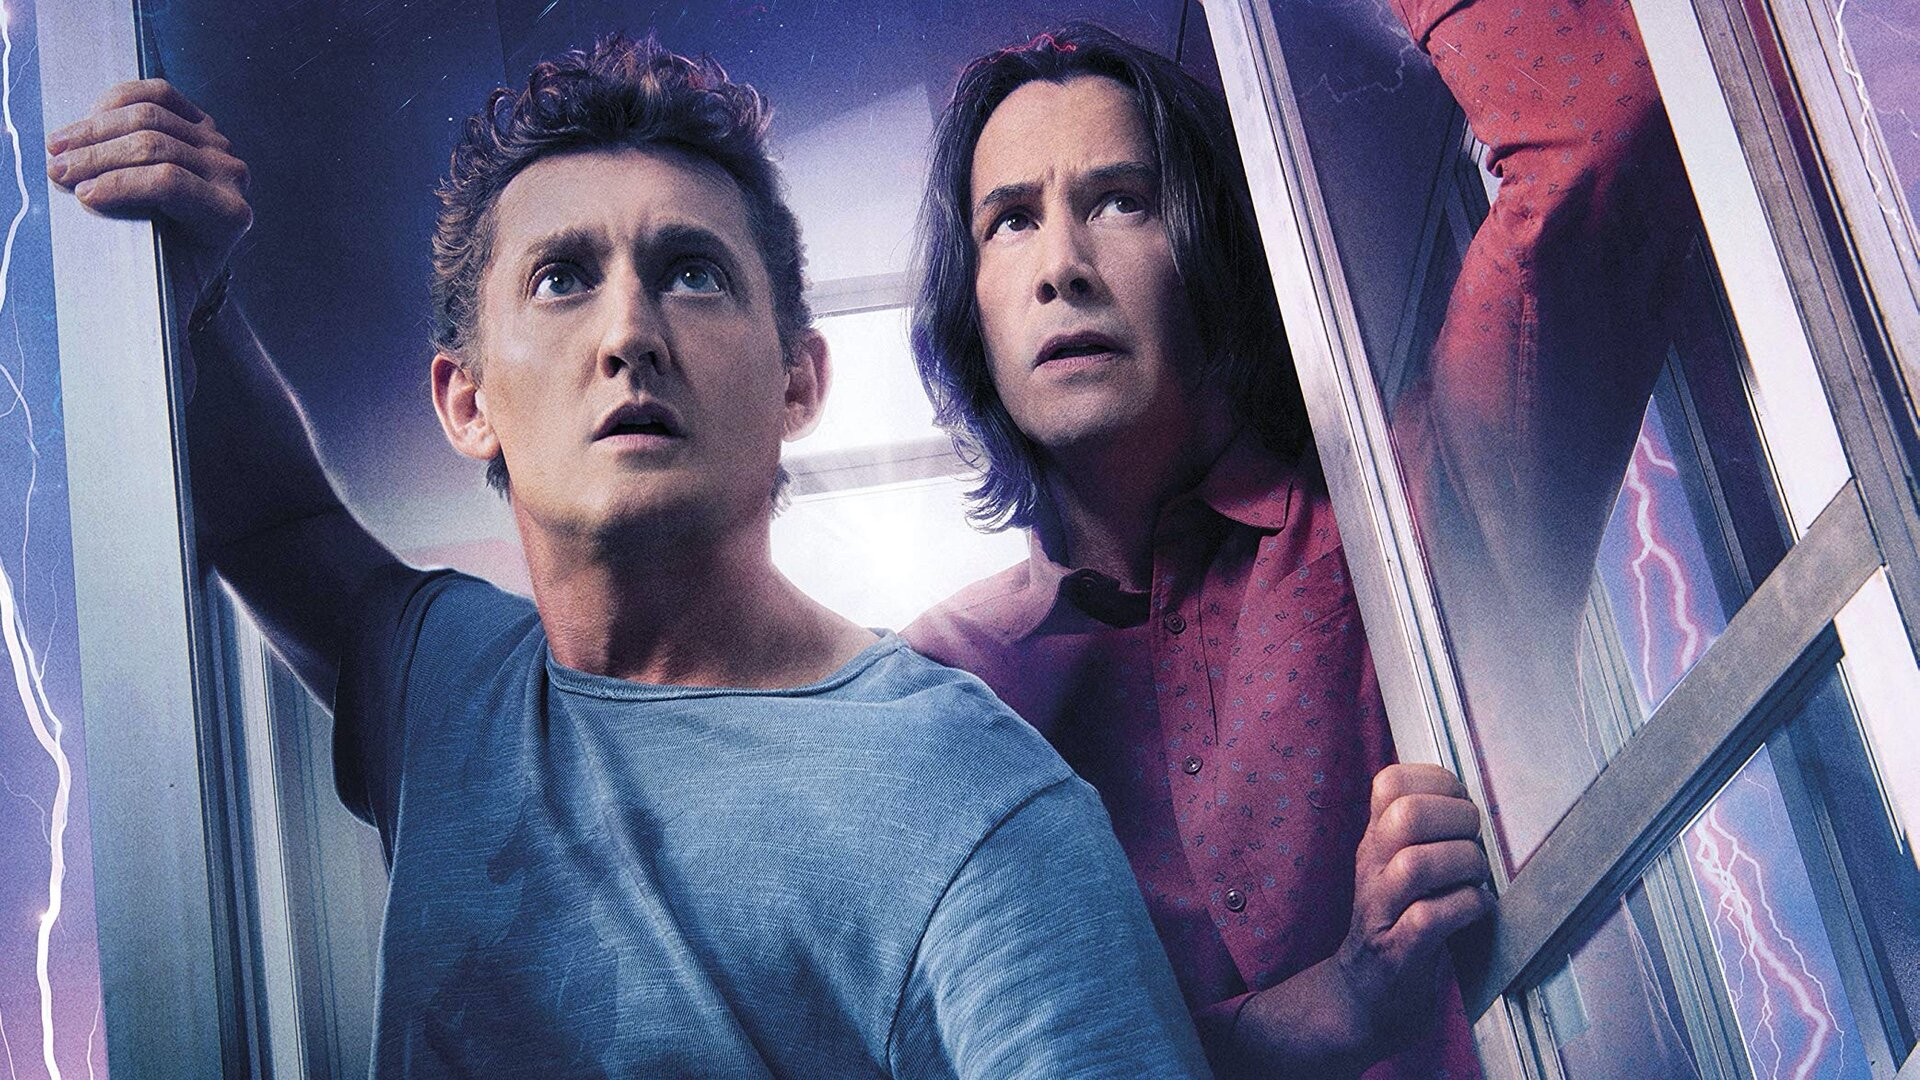 New Image For BILL & TED FACE THE MUSIC Teases The Character's Latest Adventure